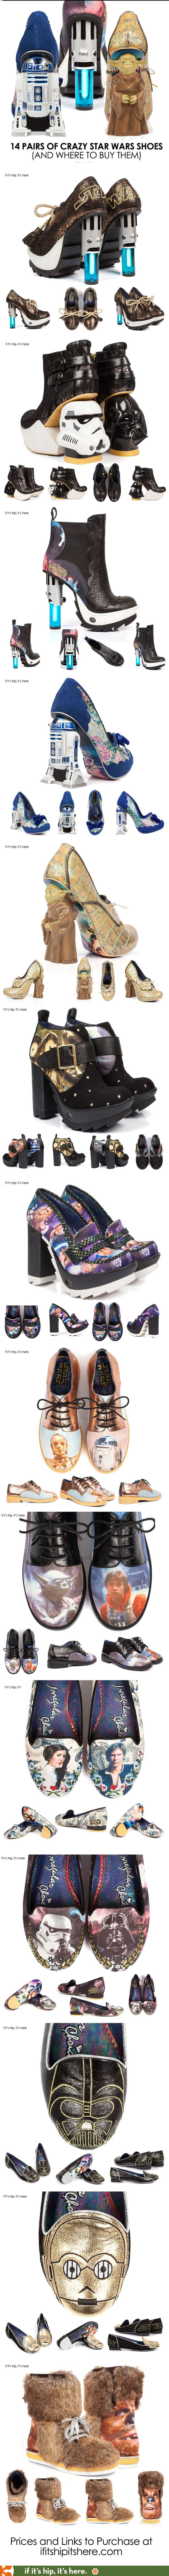 All 14 Crazy Pairs of Star Wars Shoes by Irregular Choice (and where to buy them) - See more at: http://www.ifitshipitshere.com/star-wars-shoes-by-irregular-choice/#sthash.nFN6mCiG.dpuf